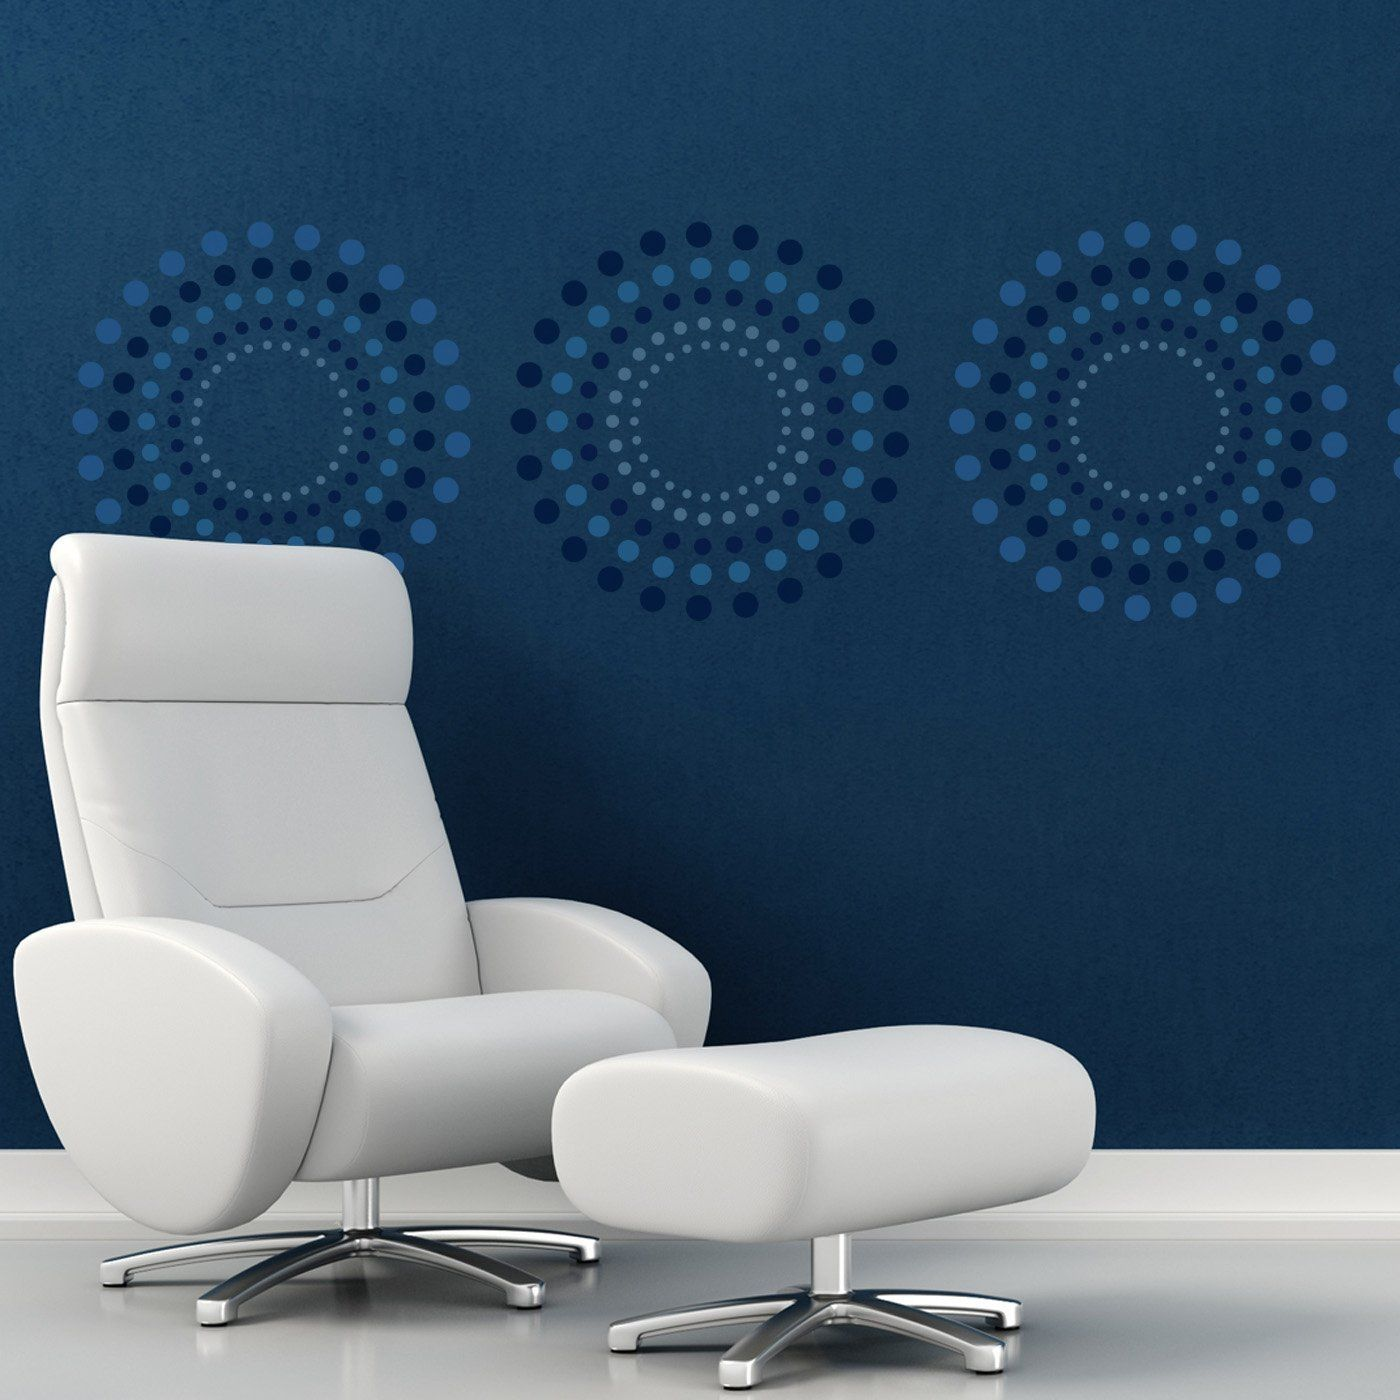 Craftstar concentric circles geometric wall stencil large craftstar concentric circles geometric wall stencil large reusable template for diy home decor amipublicfo Gallery